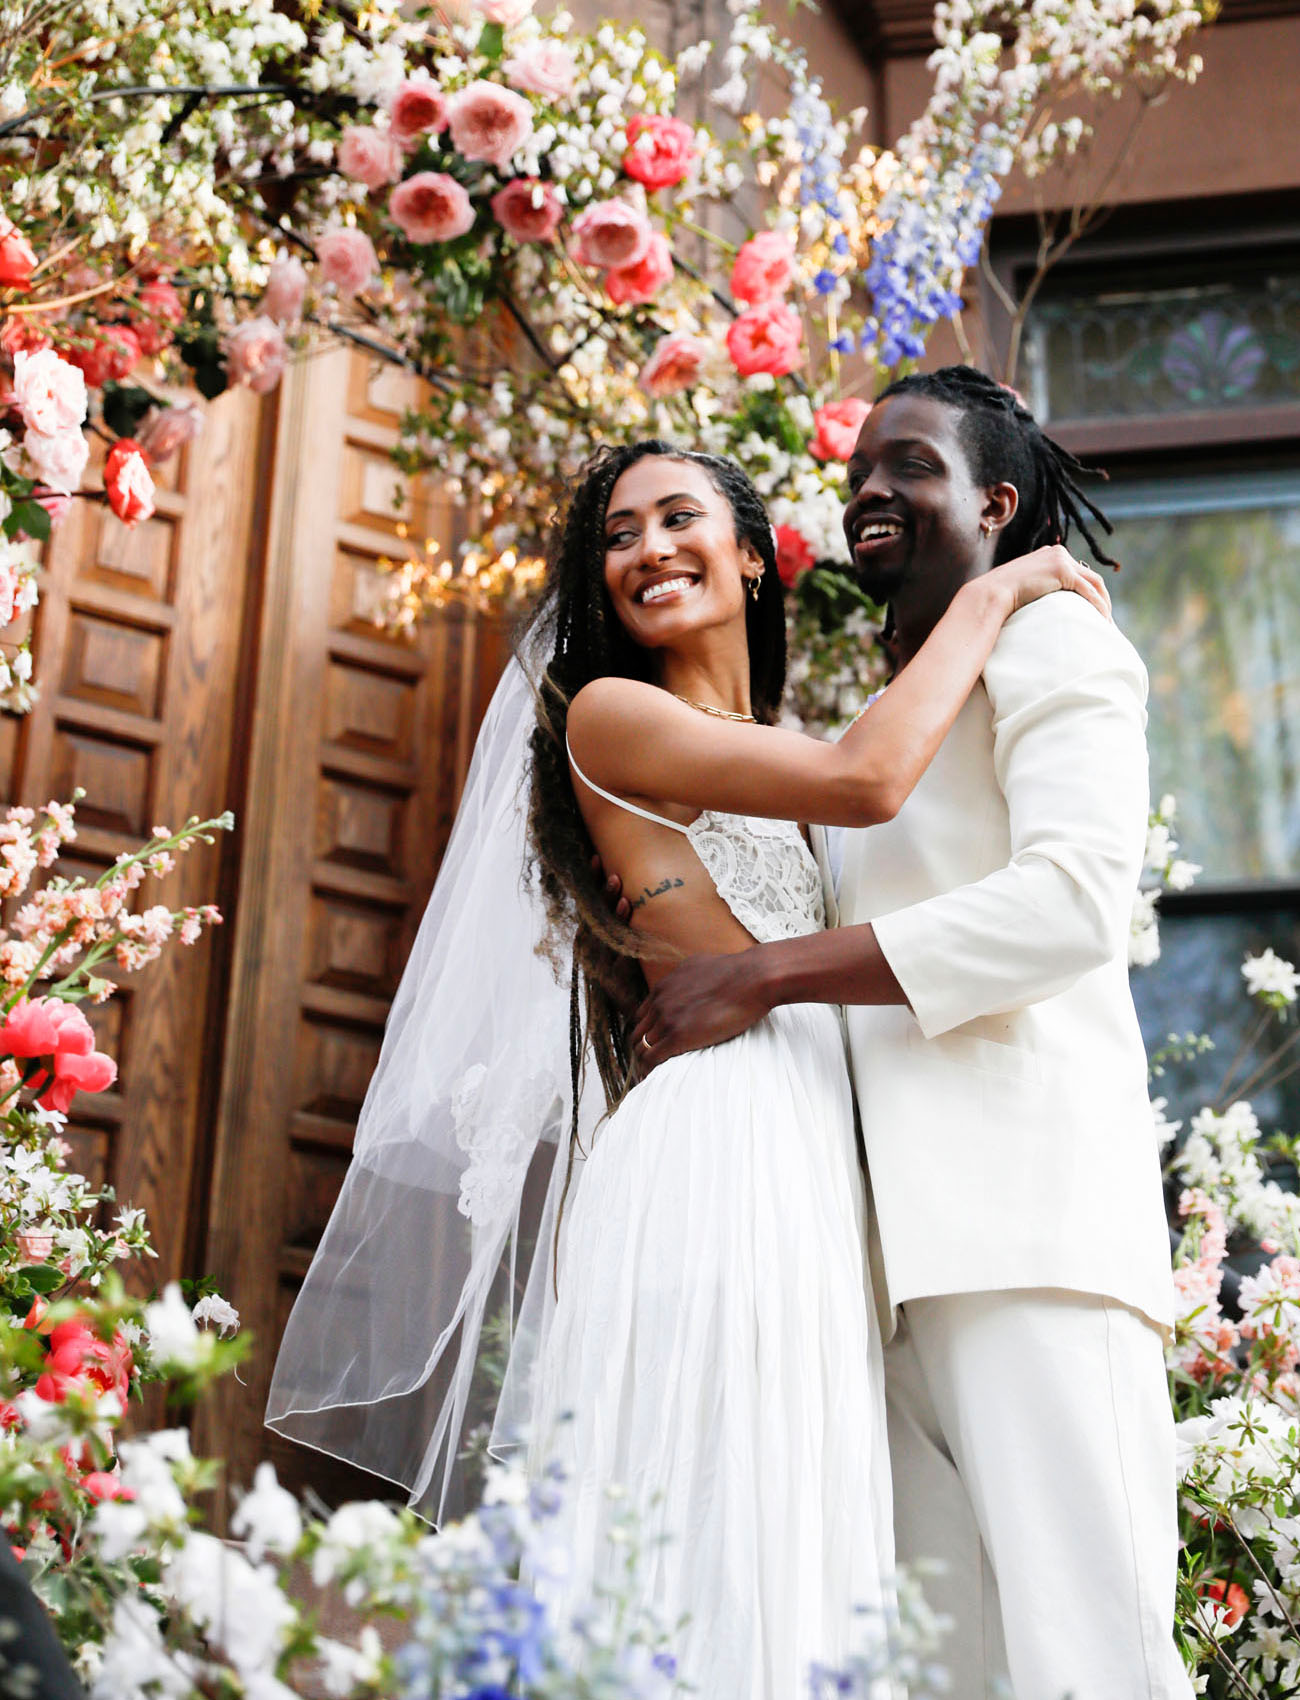 Mariage d'Elaine Welteroth